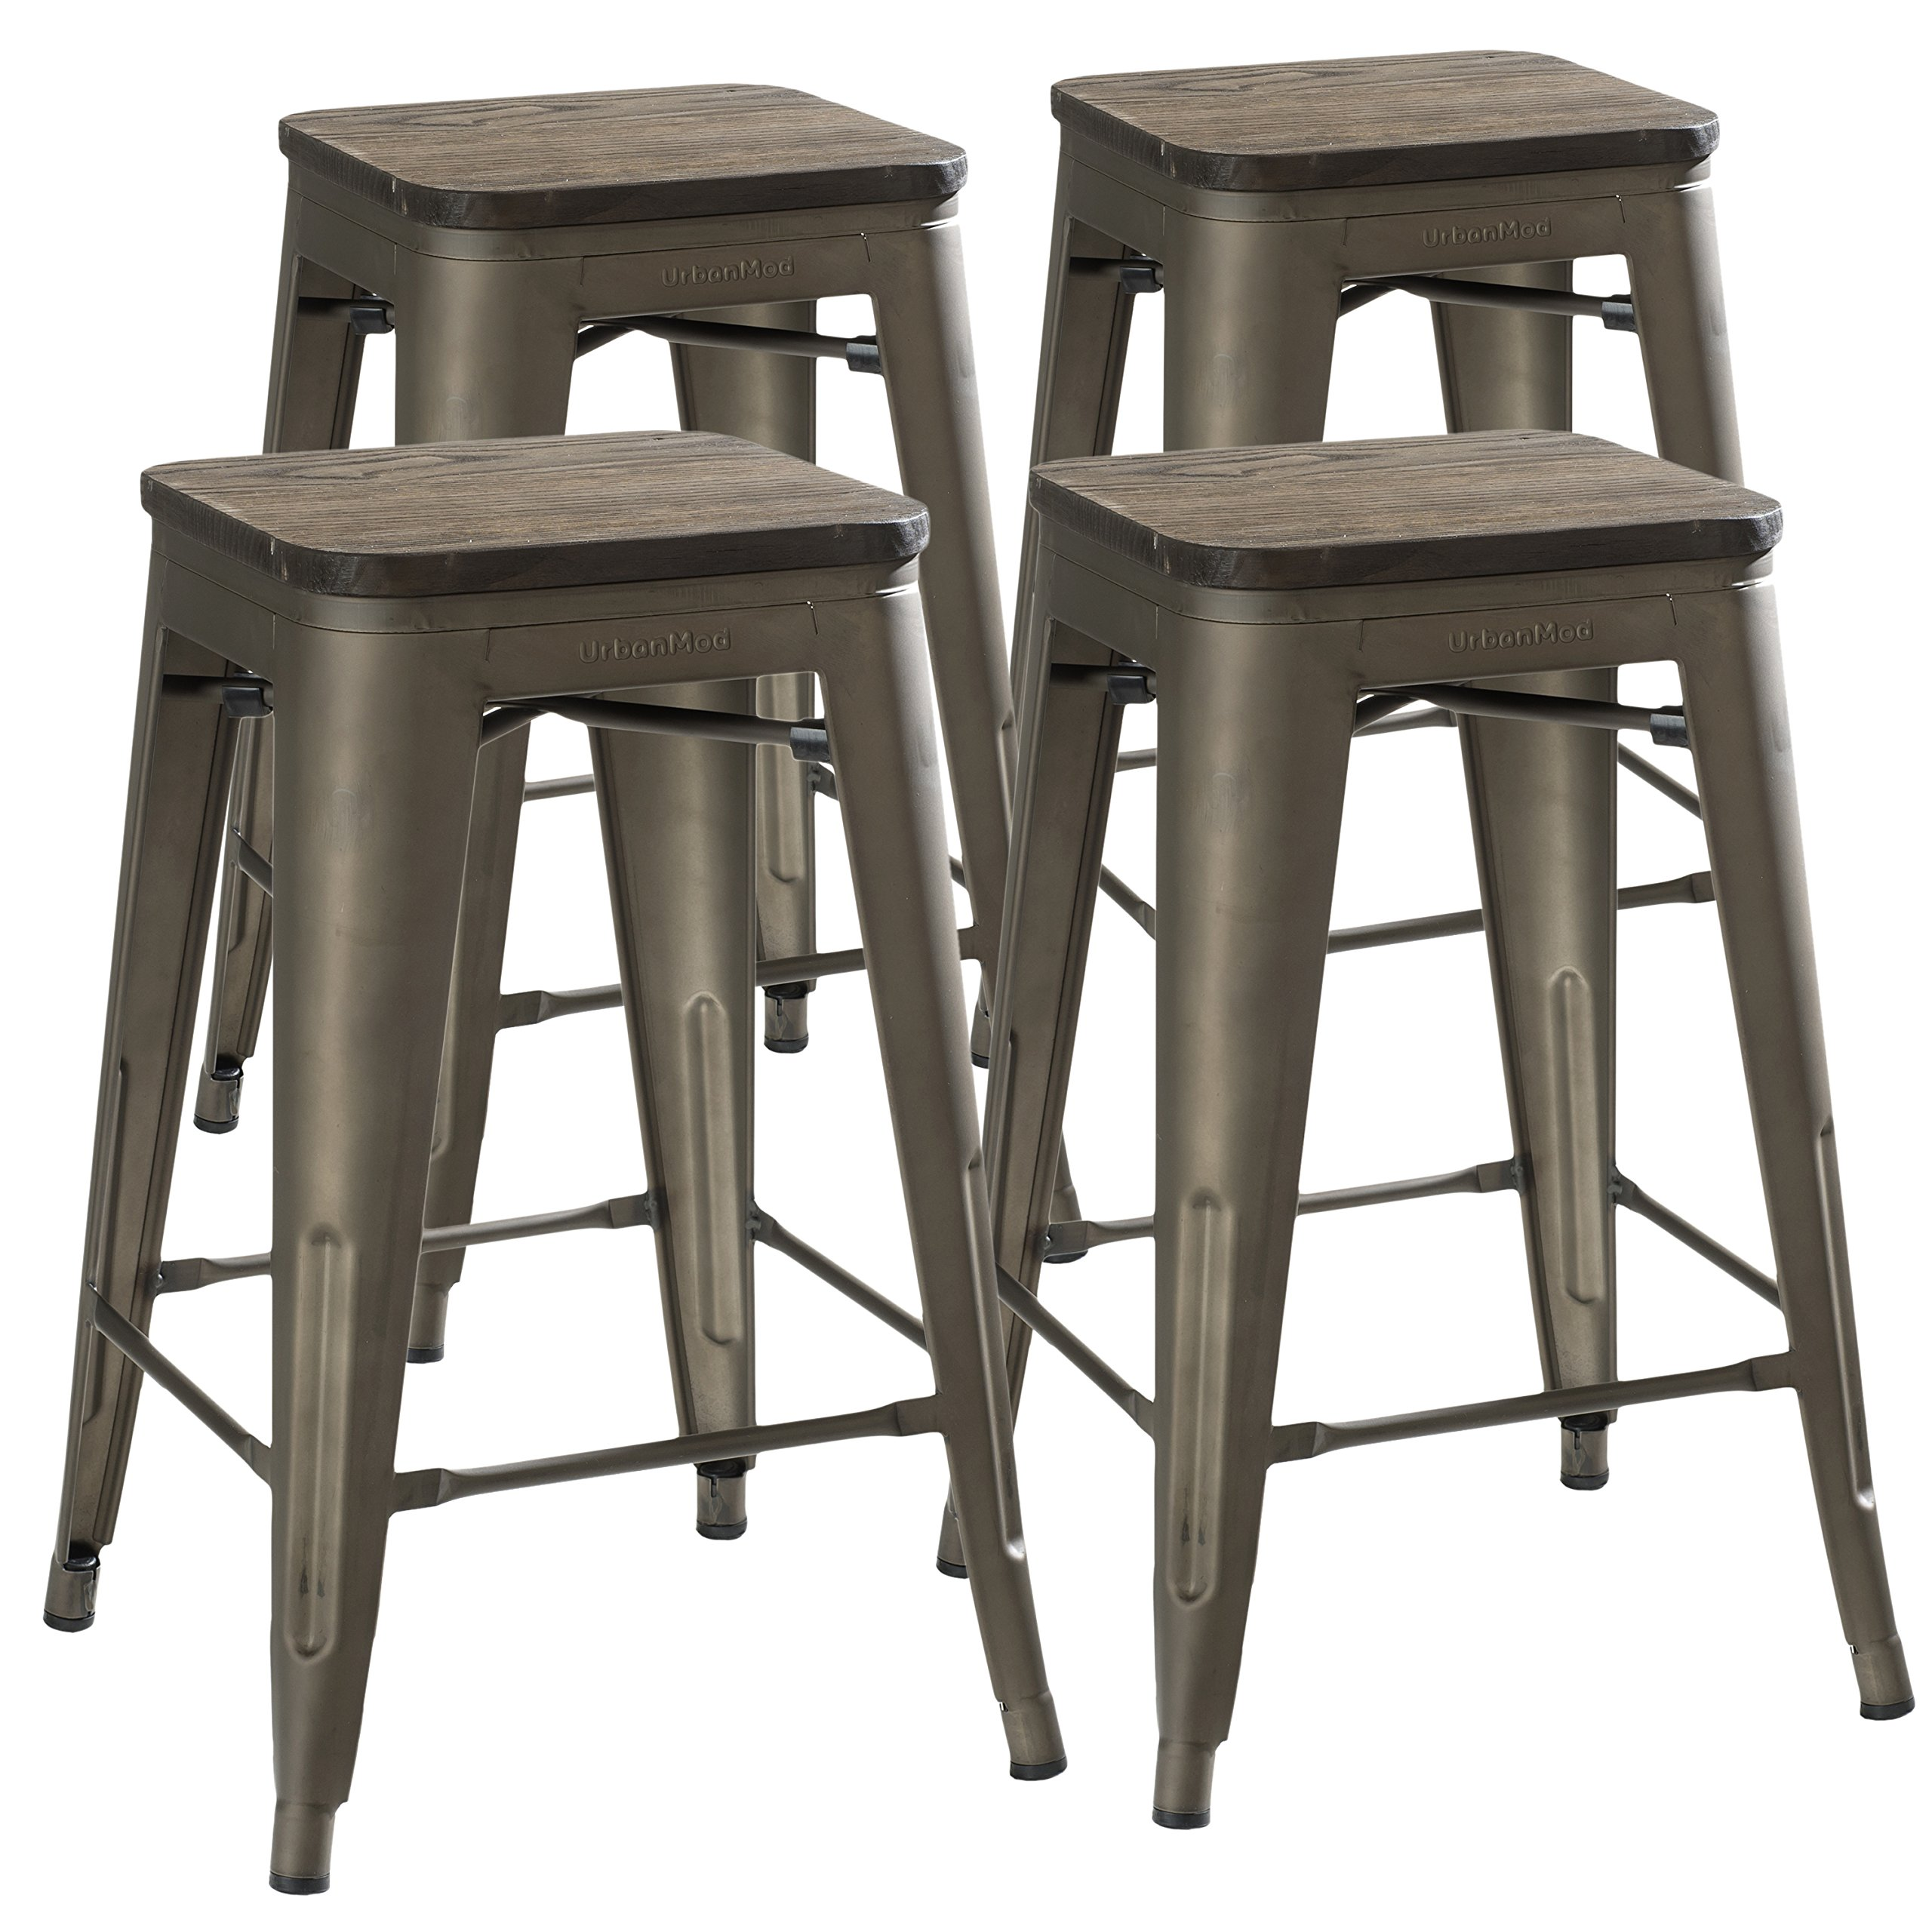 Counter Height Versus Bar Height Stools Counter Versus Bar